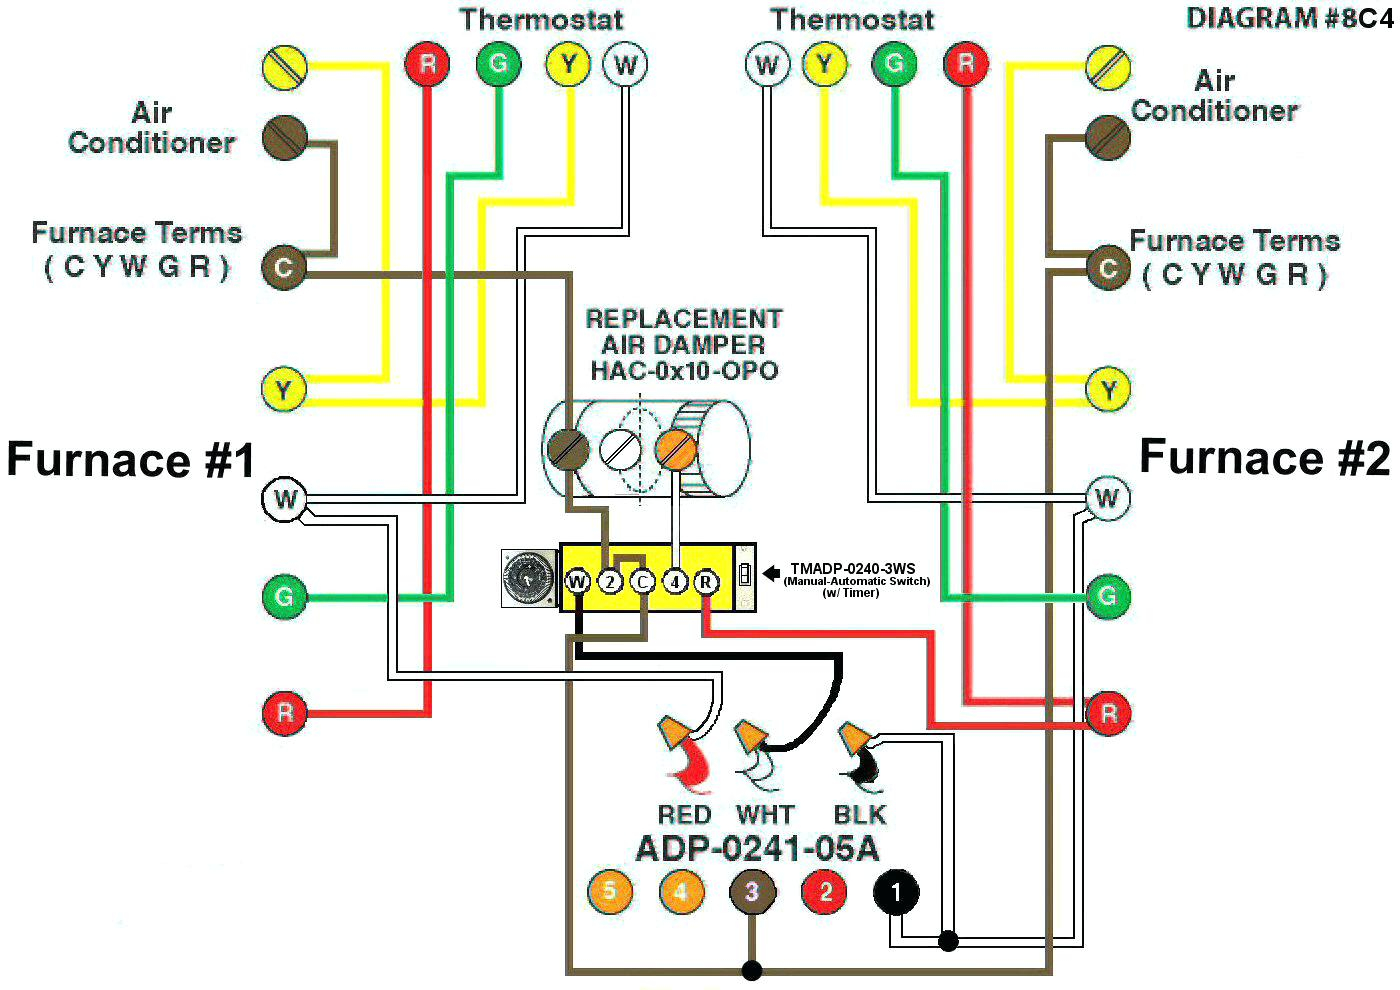 c17 thermostat wiring diagram Download-Hvac Thermostat Wiring Diagram health shop 14-k